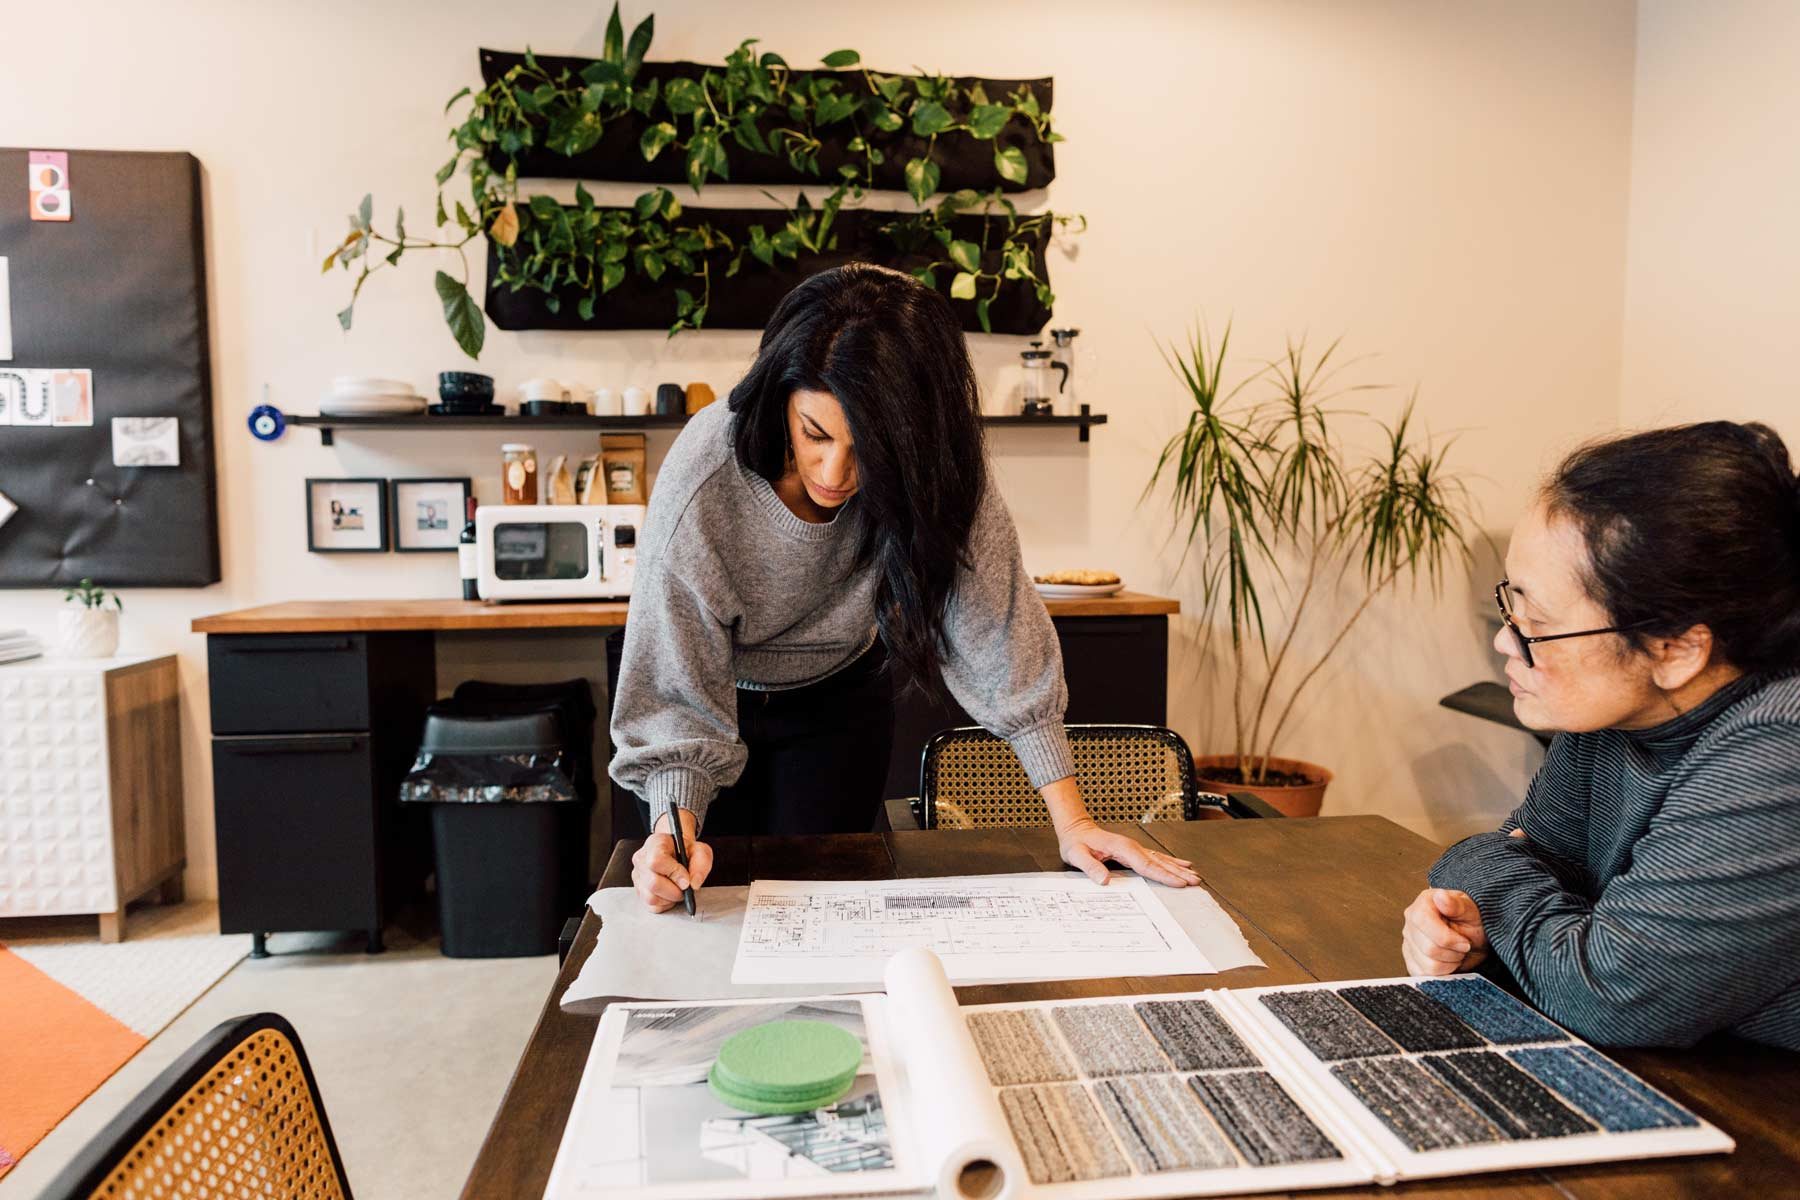 Zoulamis works on a project with Bowerbird's draftsperson, Judith Bernier.